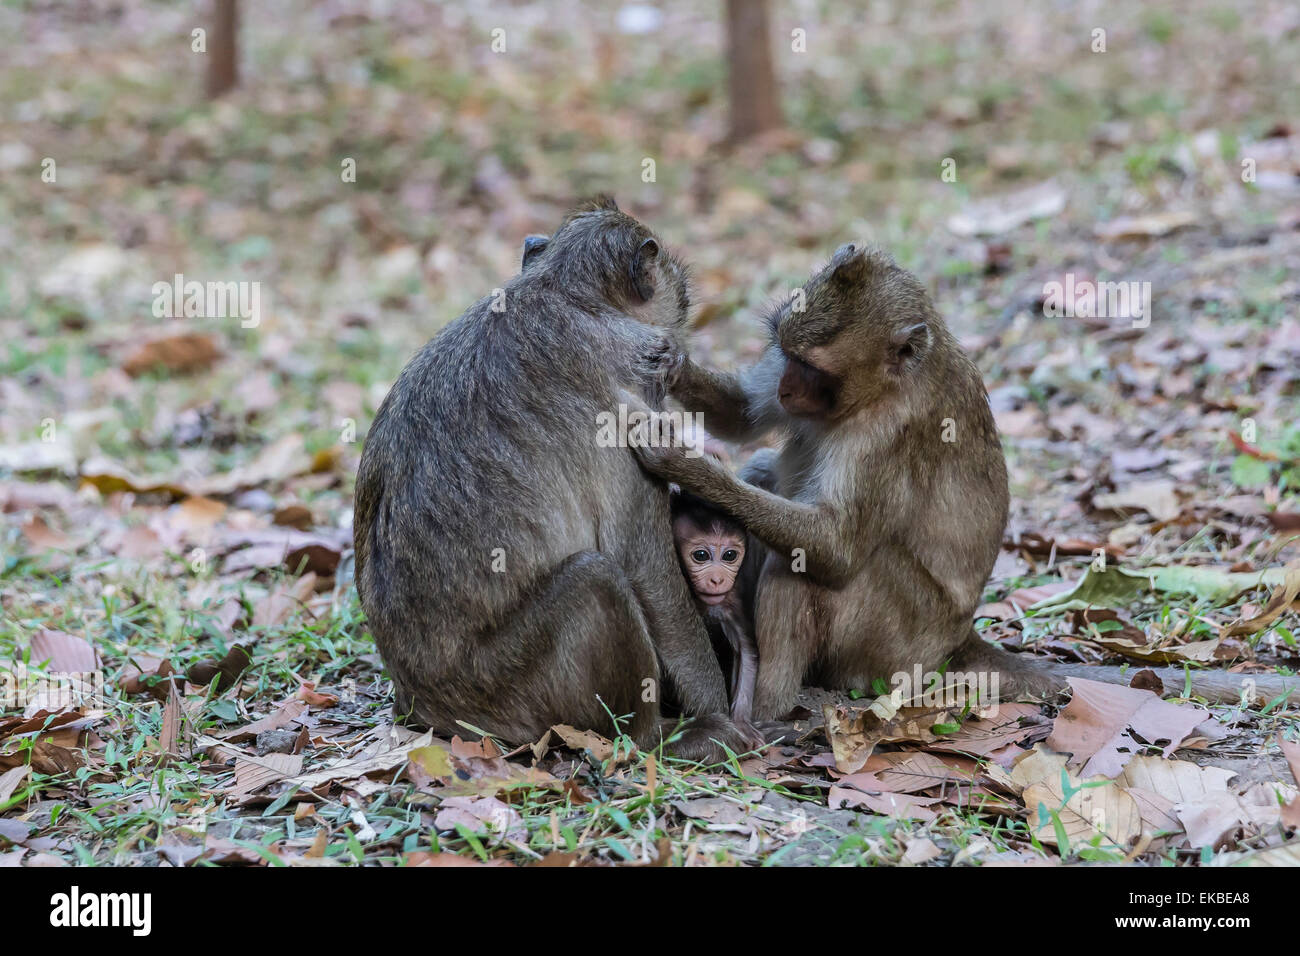 Long-tailed macaques (Macaca fascicularis)grooming near Angkor Thom, Siem Reap, Cambodia, Indochina, Southeast Asia, - Stock Image